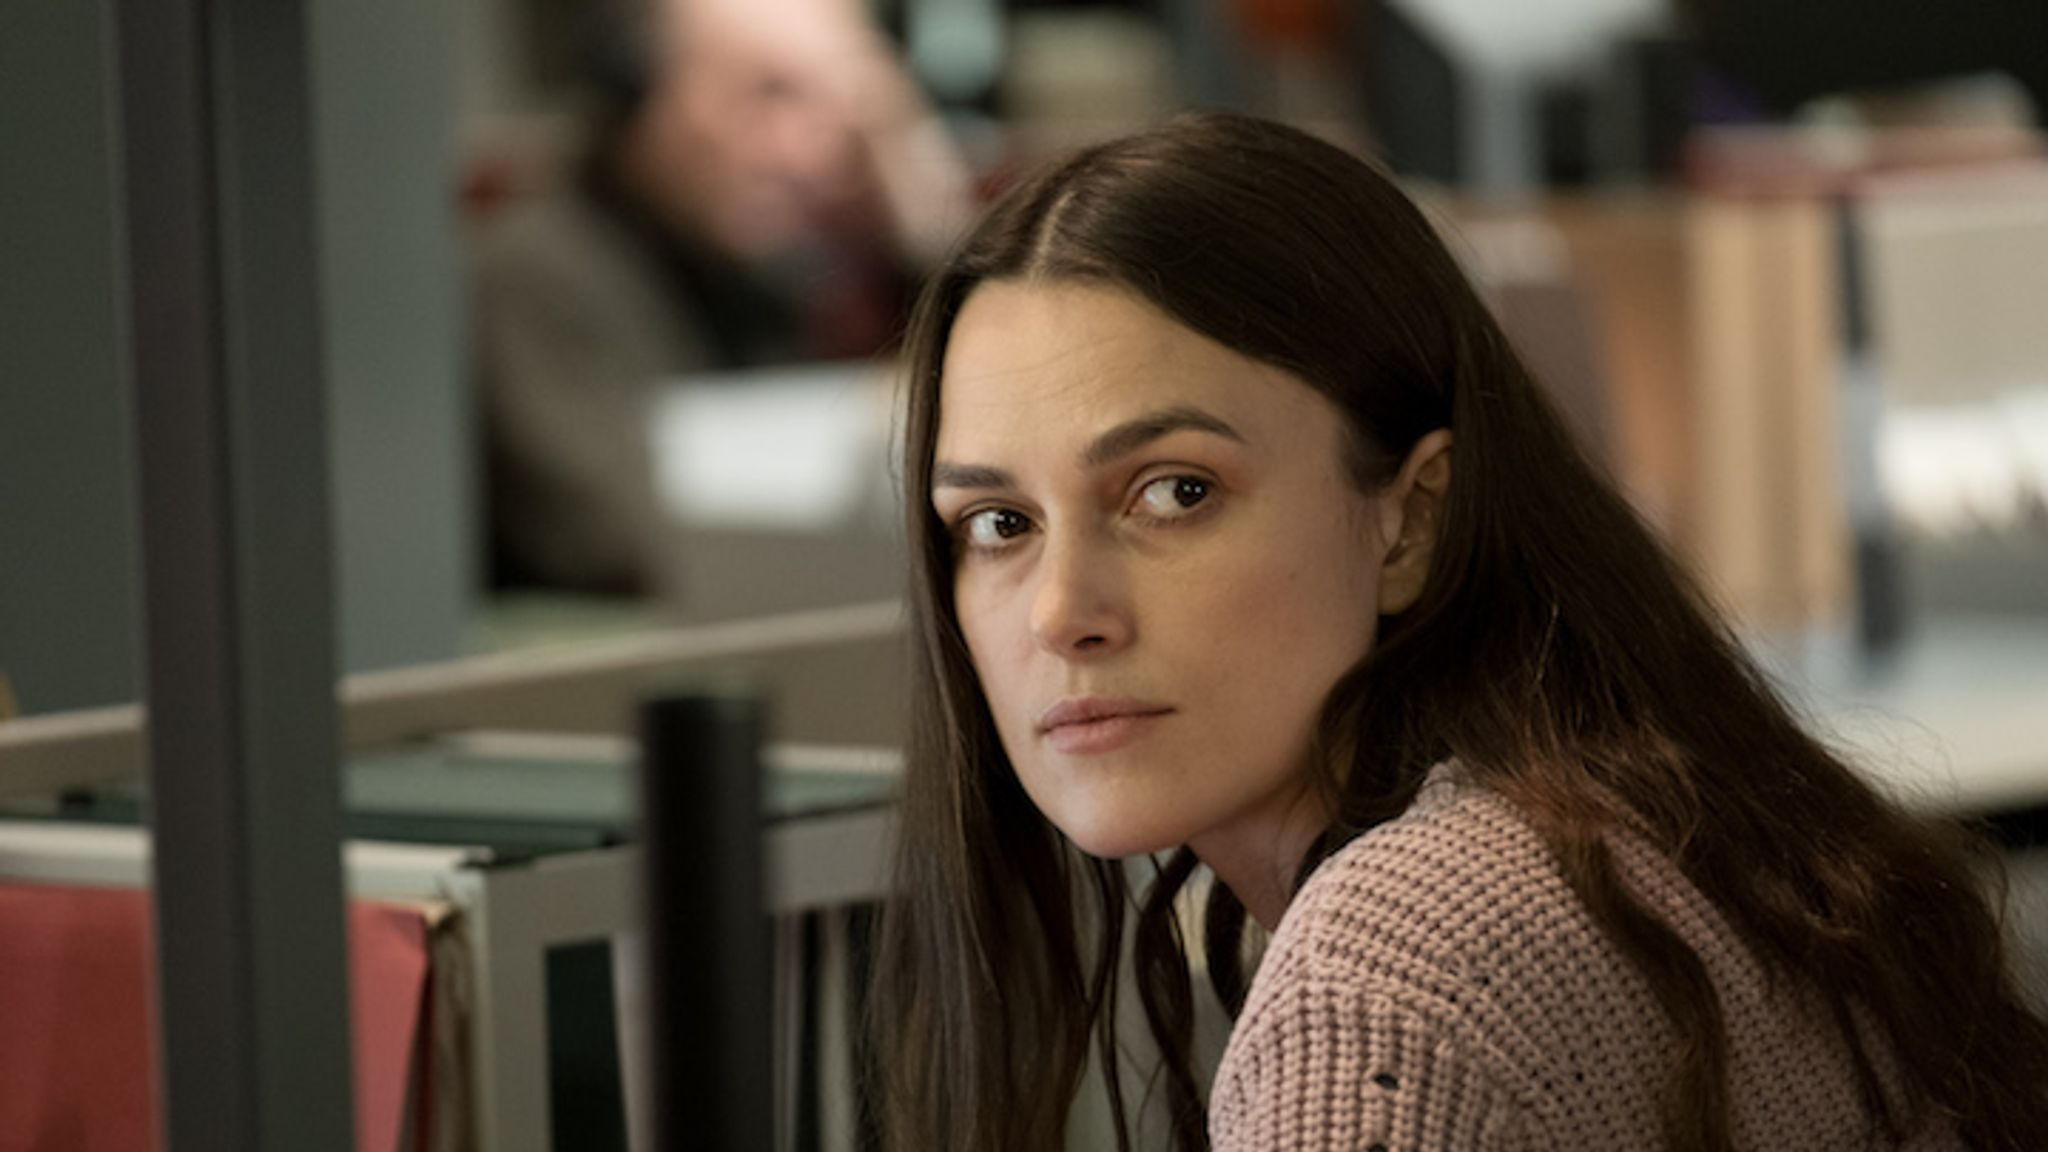 Keira Knightley: I'm a news junkie - but sometimes it's nice not to know